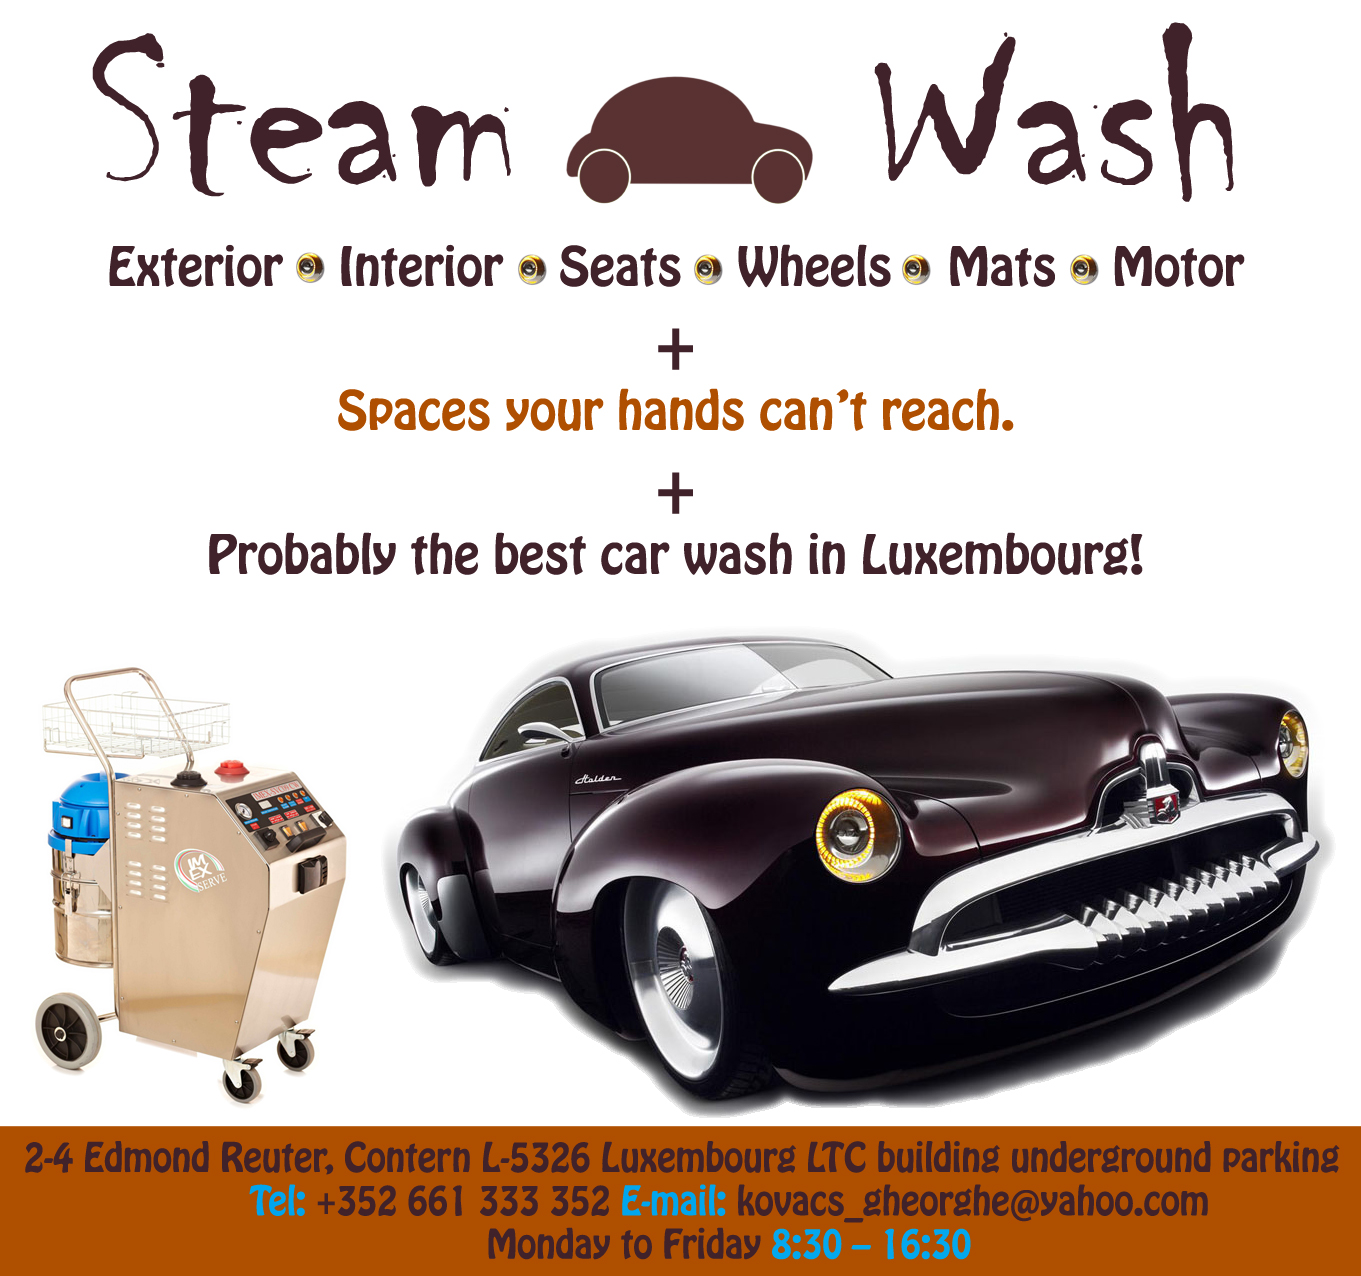 steam car wash in luxembourg. Black Bedroom Furniture Sets. Home Design Ideas